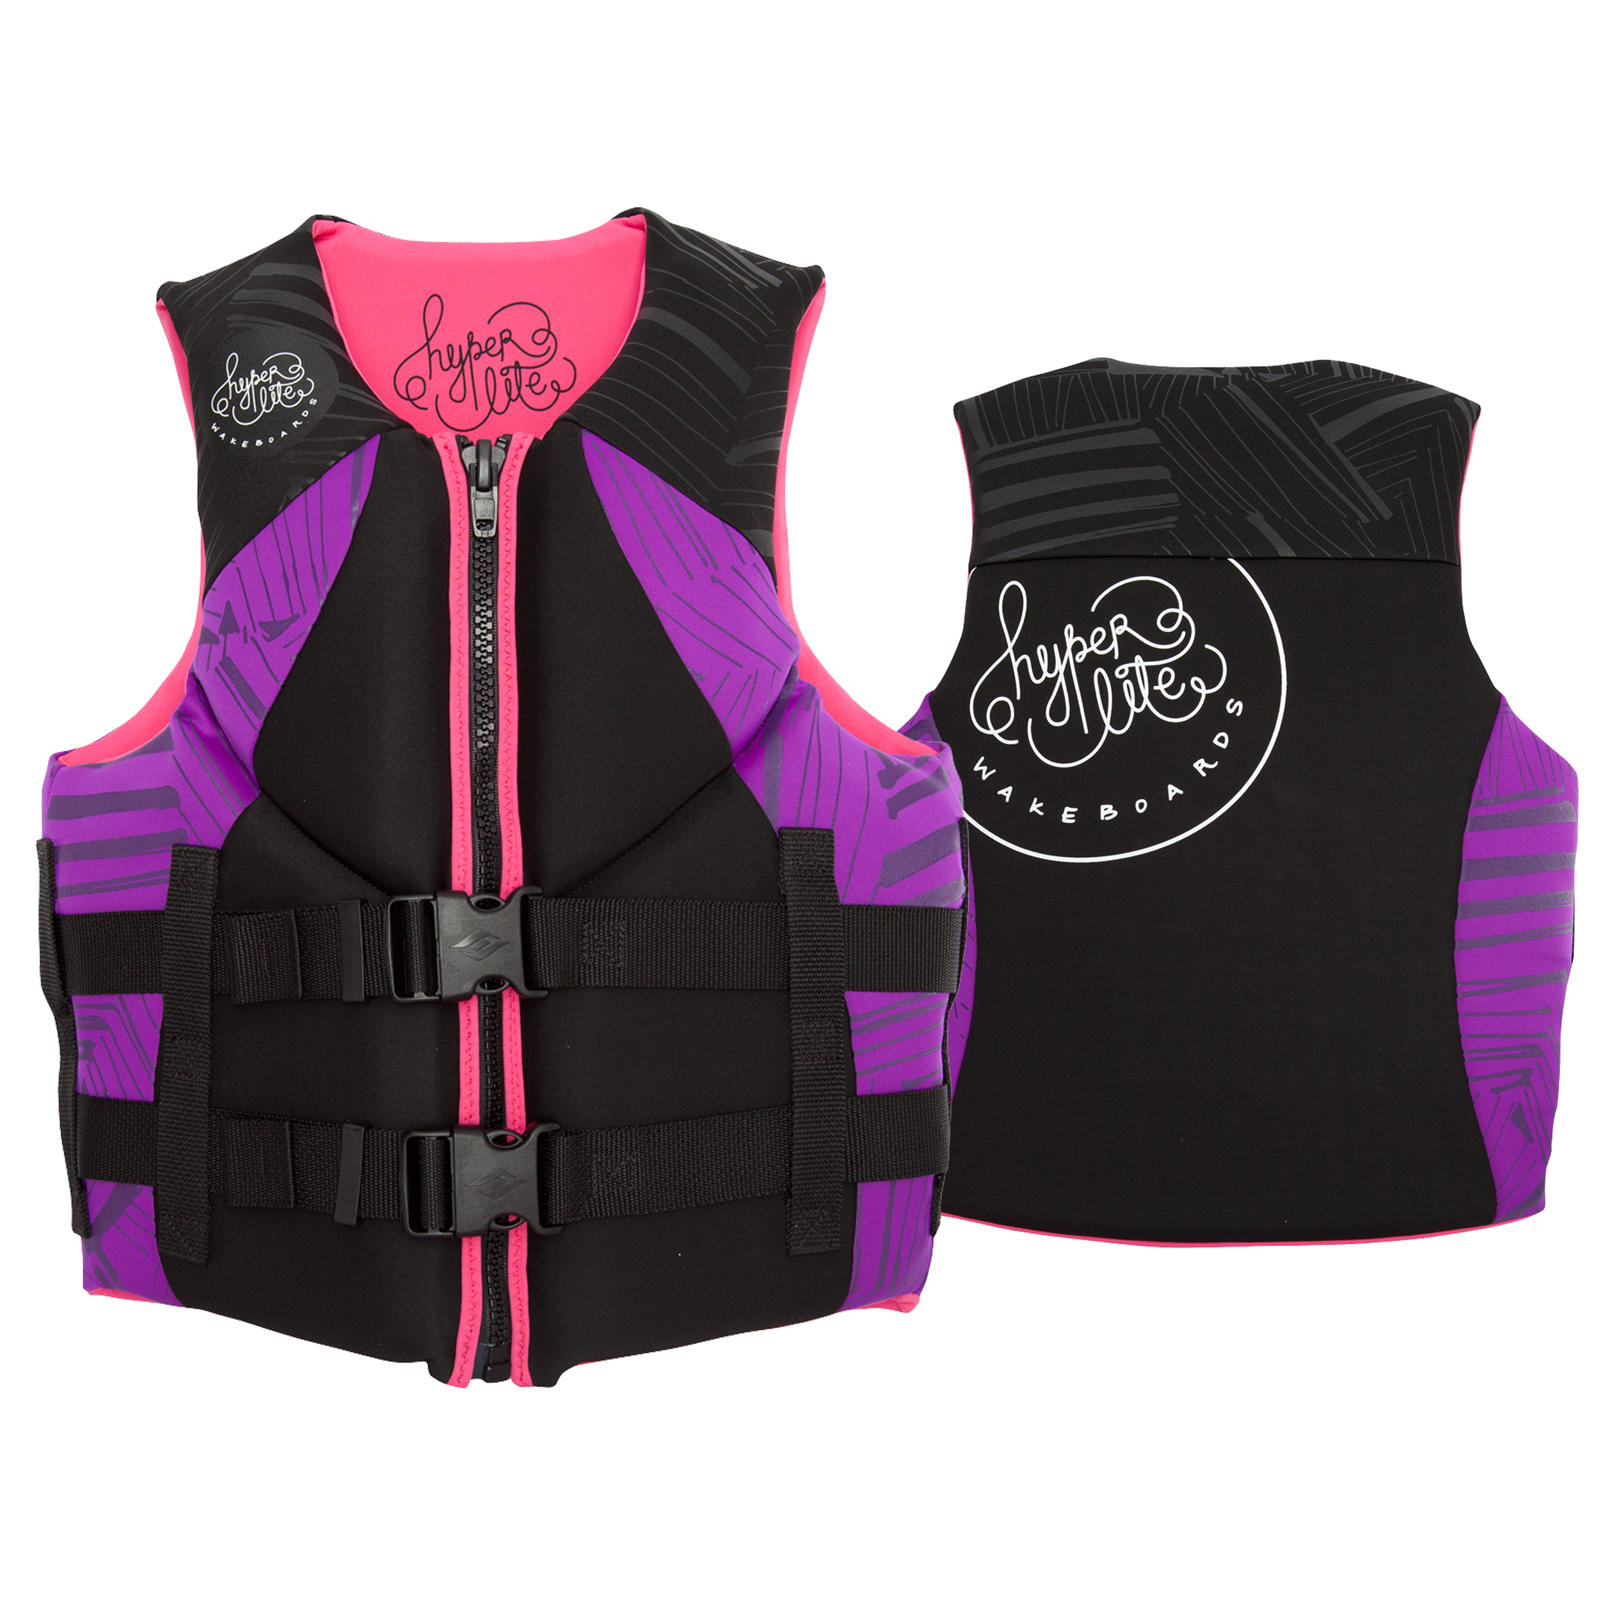 WOMENS INDY NEO VEST - PURPLE/PINK HYPERLITE 2017